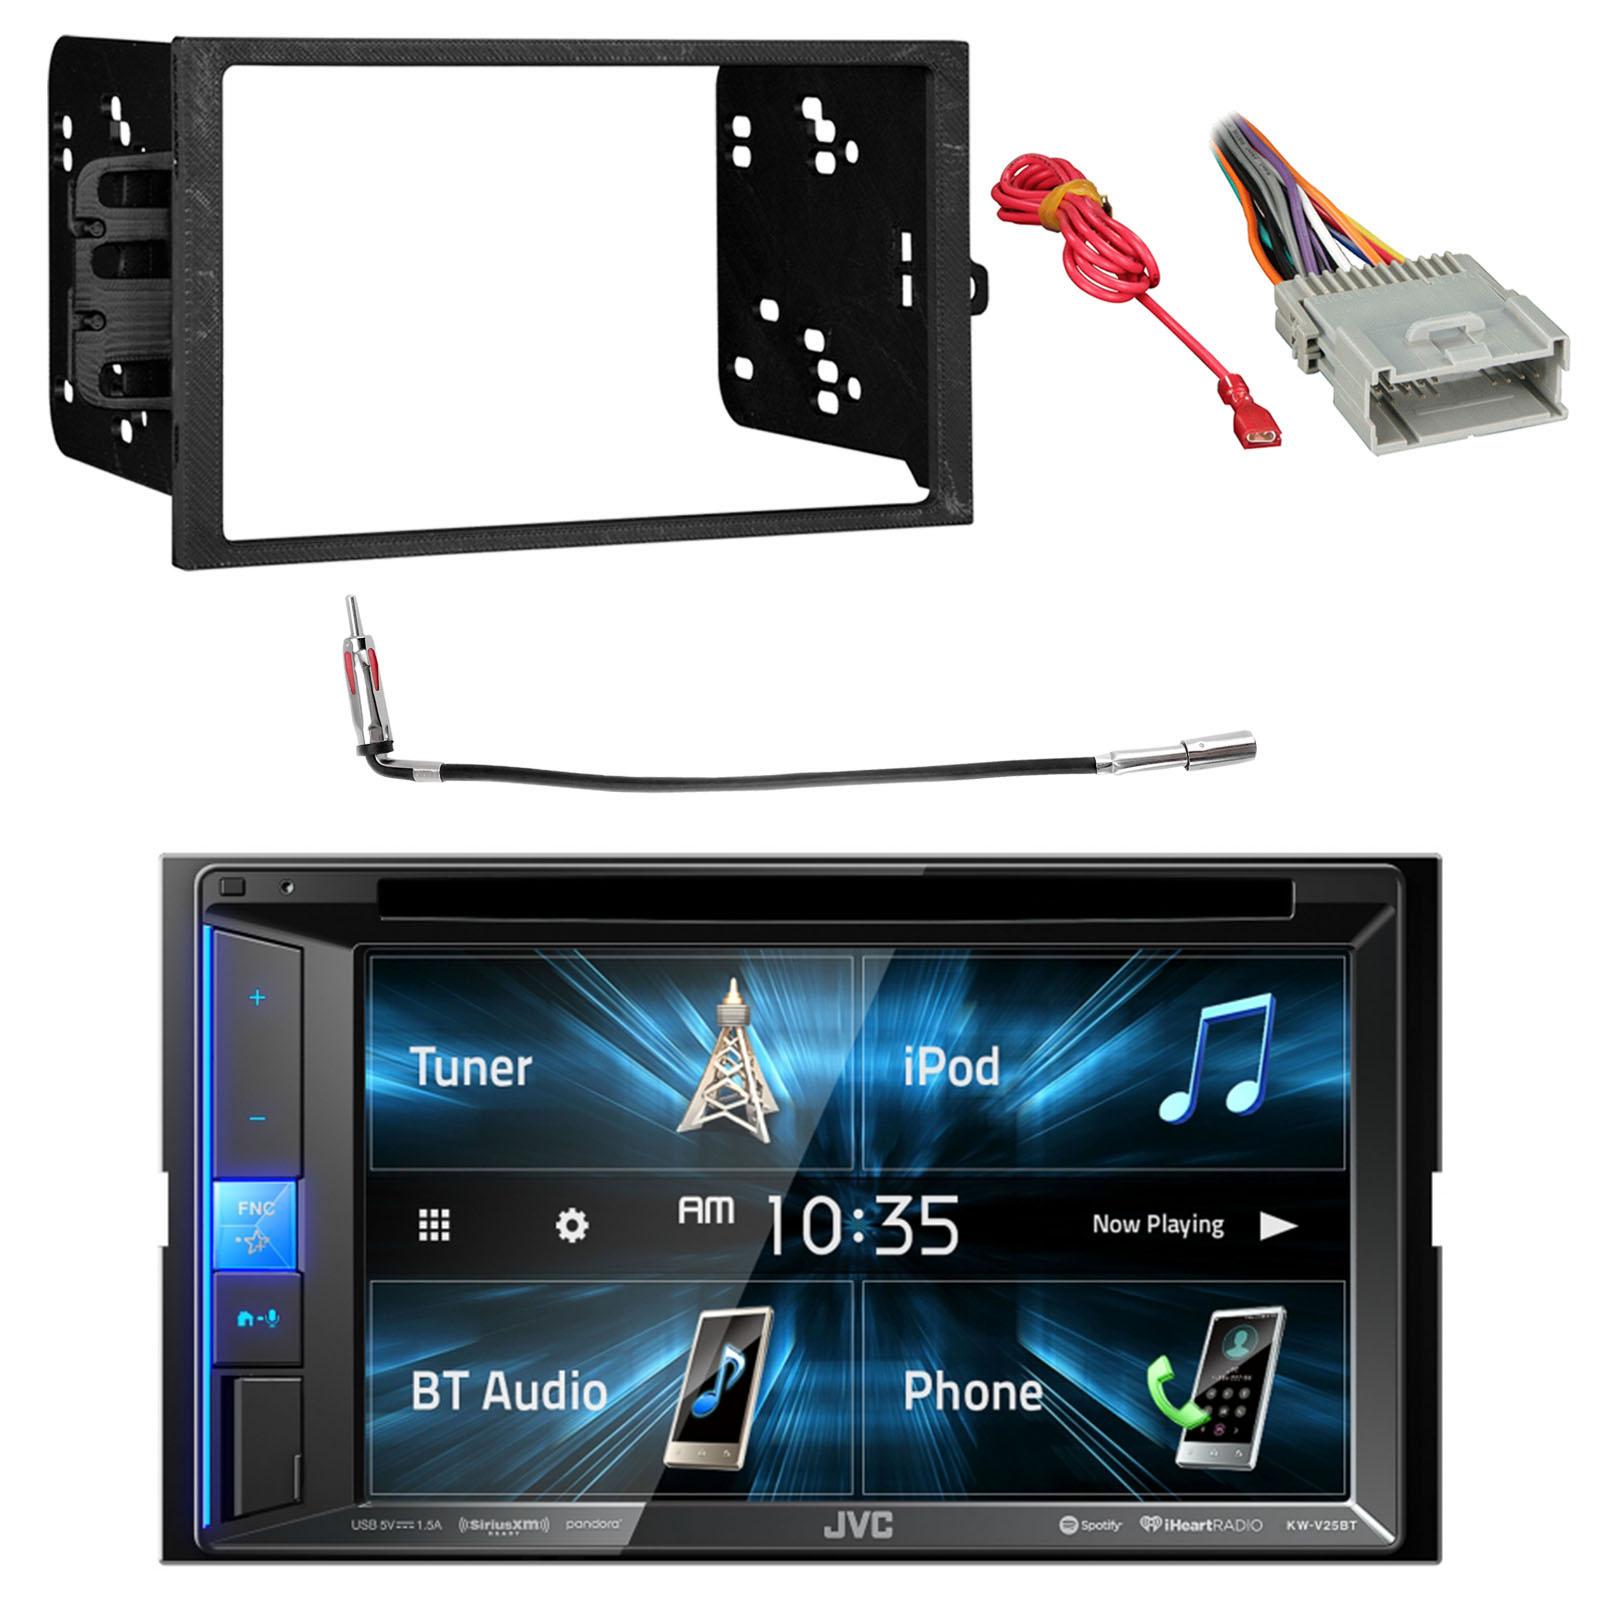 JVC KWV25BT 2DIN BT Car Stereo Receiver w/Touchscreen w/Metra 95-2001 2DIN Install Kit for Select 1990-Up GM, Metra 40-GM10 Antenna Adapter for 98-2006 GM Car & Metra 70-2003 Radio Wiring Harness